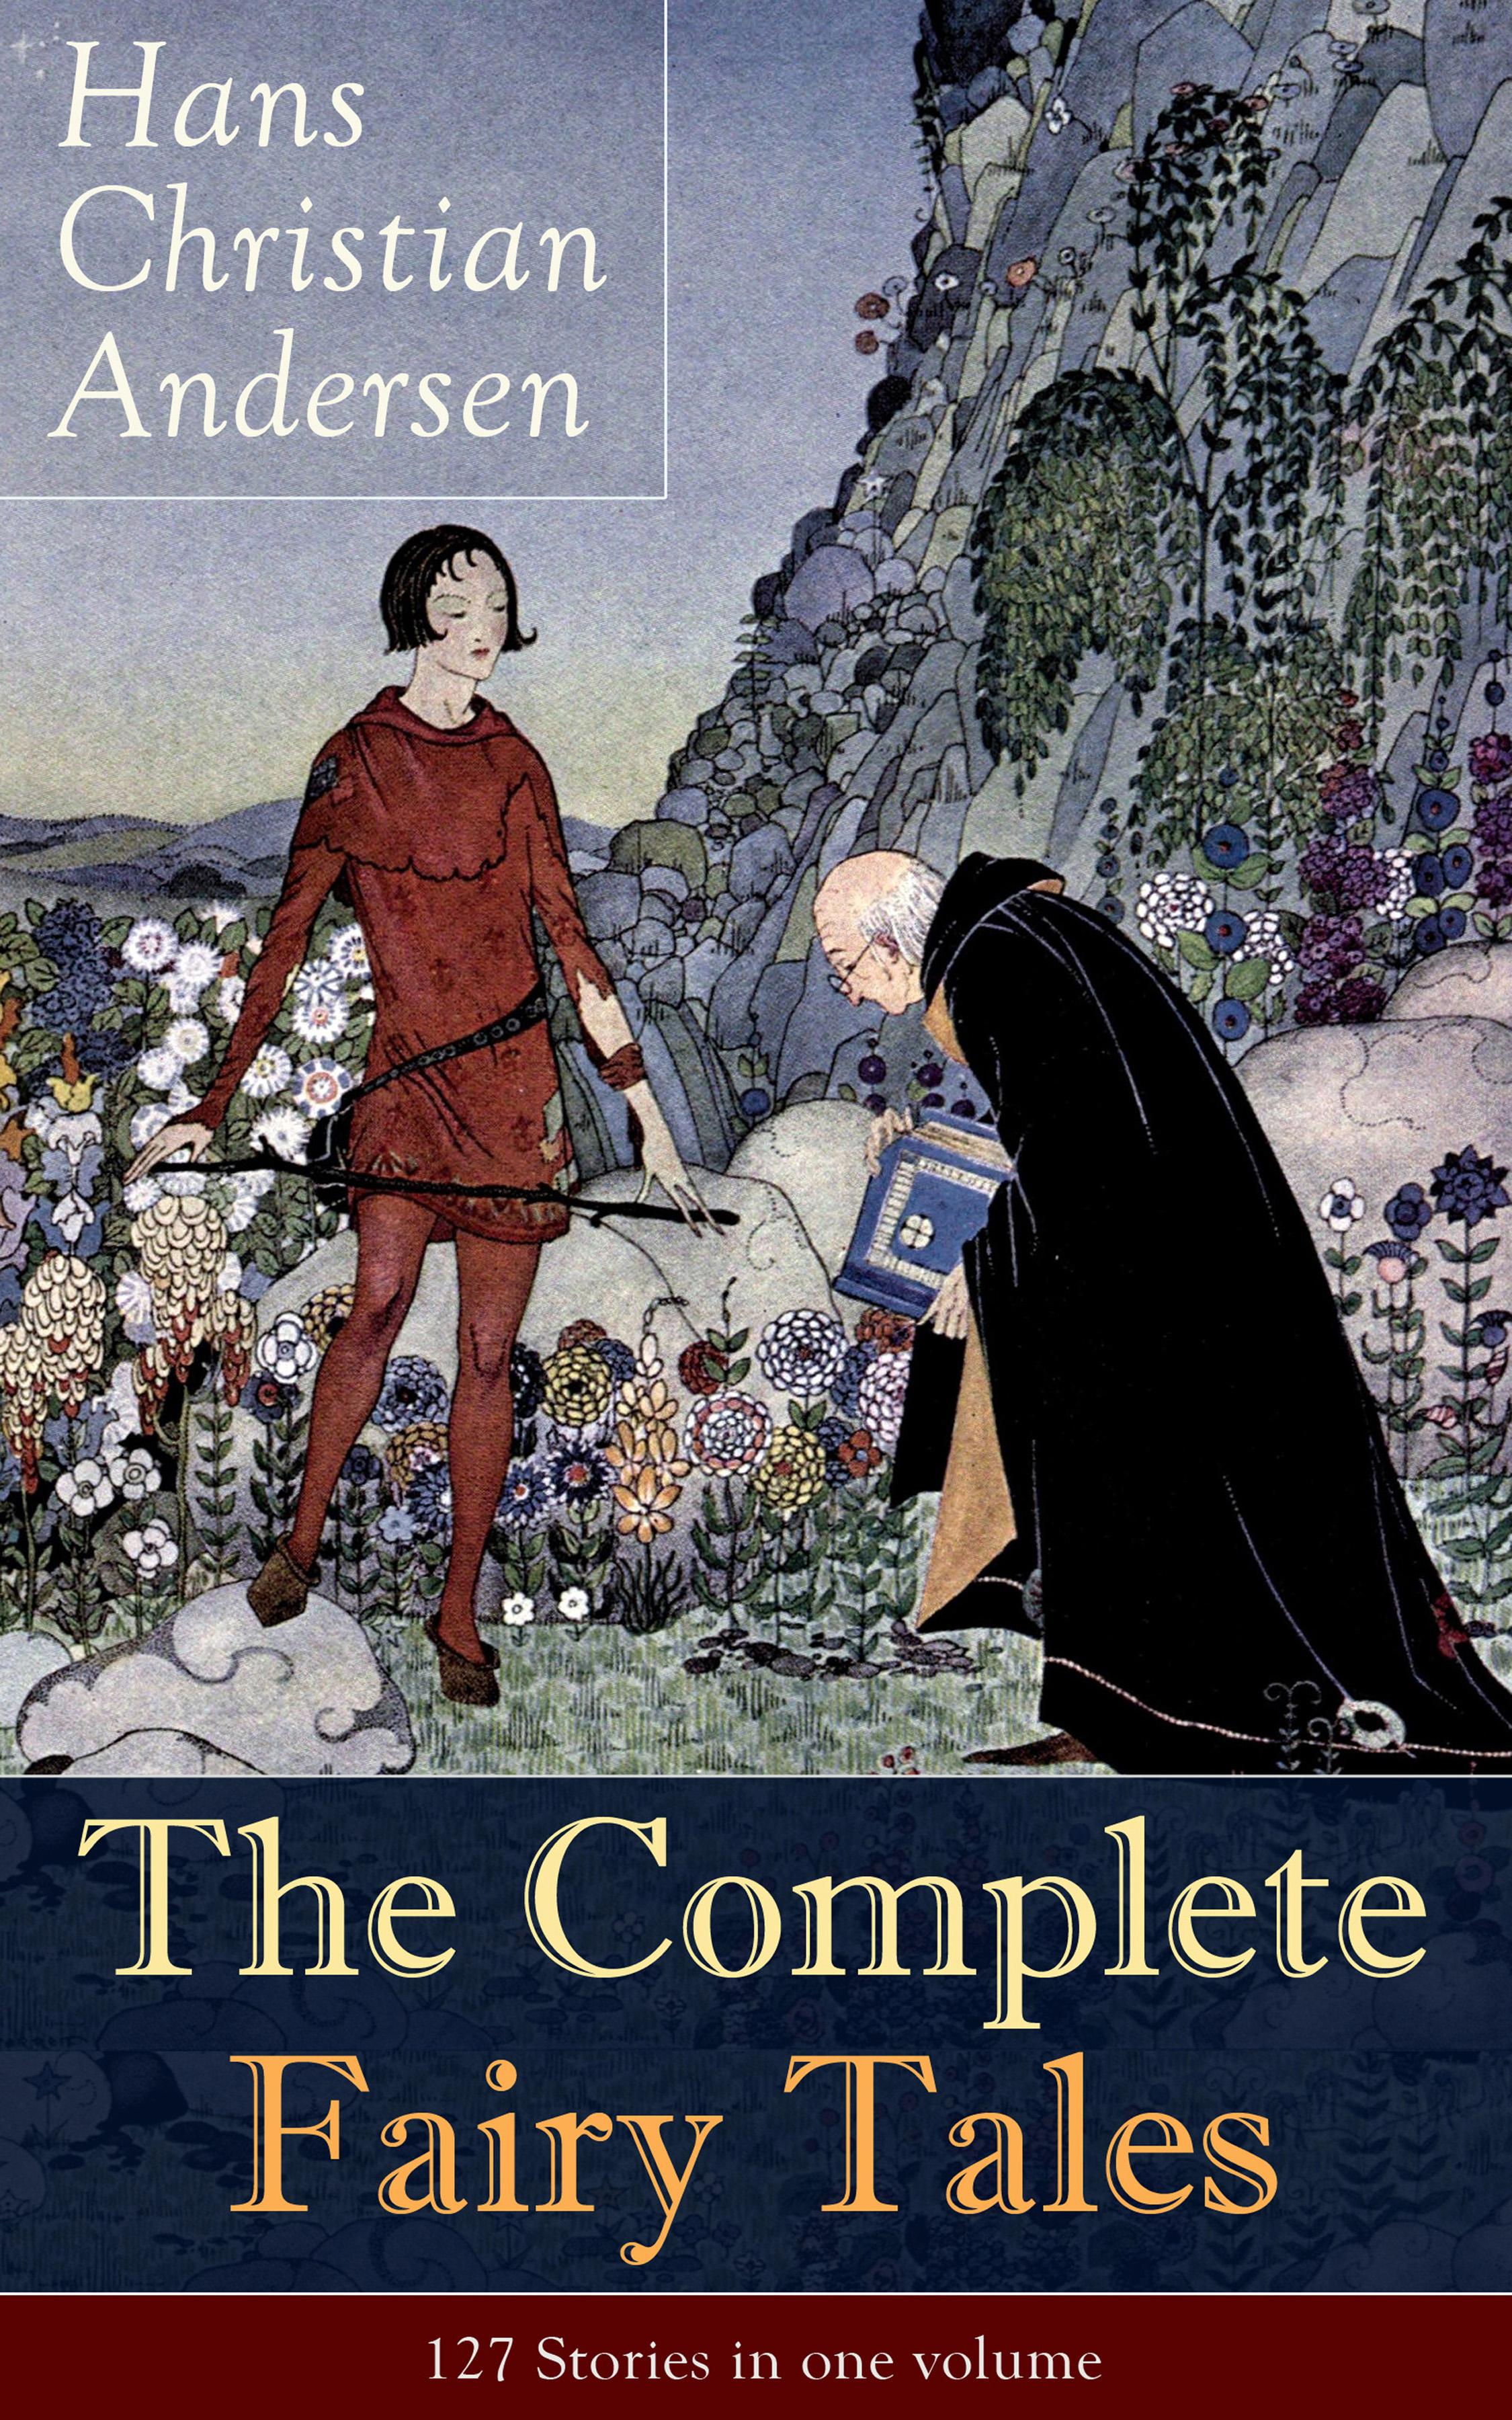 Hans Christian Andersen The Complete Fairy Tales of Hans Christian Andersen: 127 Stories in one volume hans christian andersen z jednego gniazda